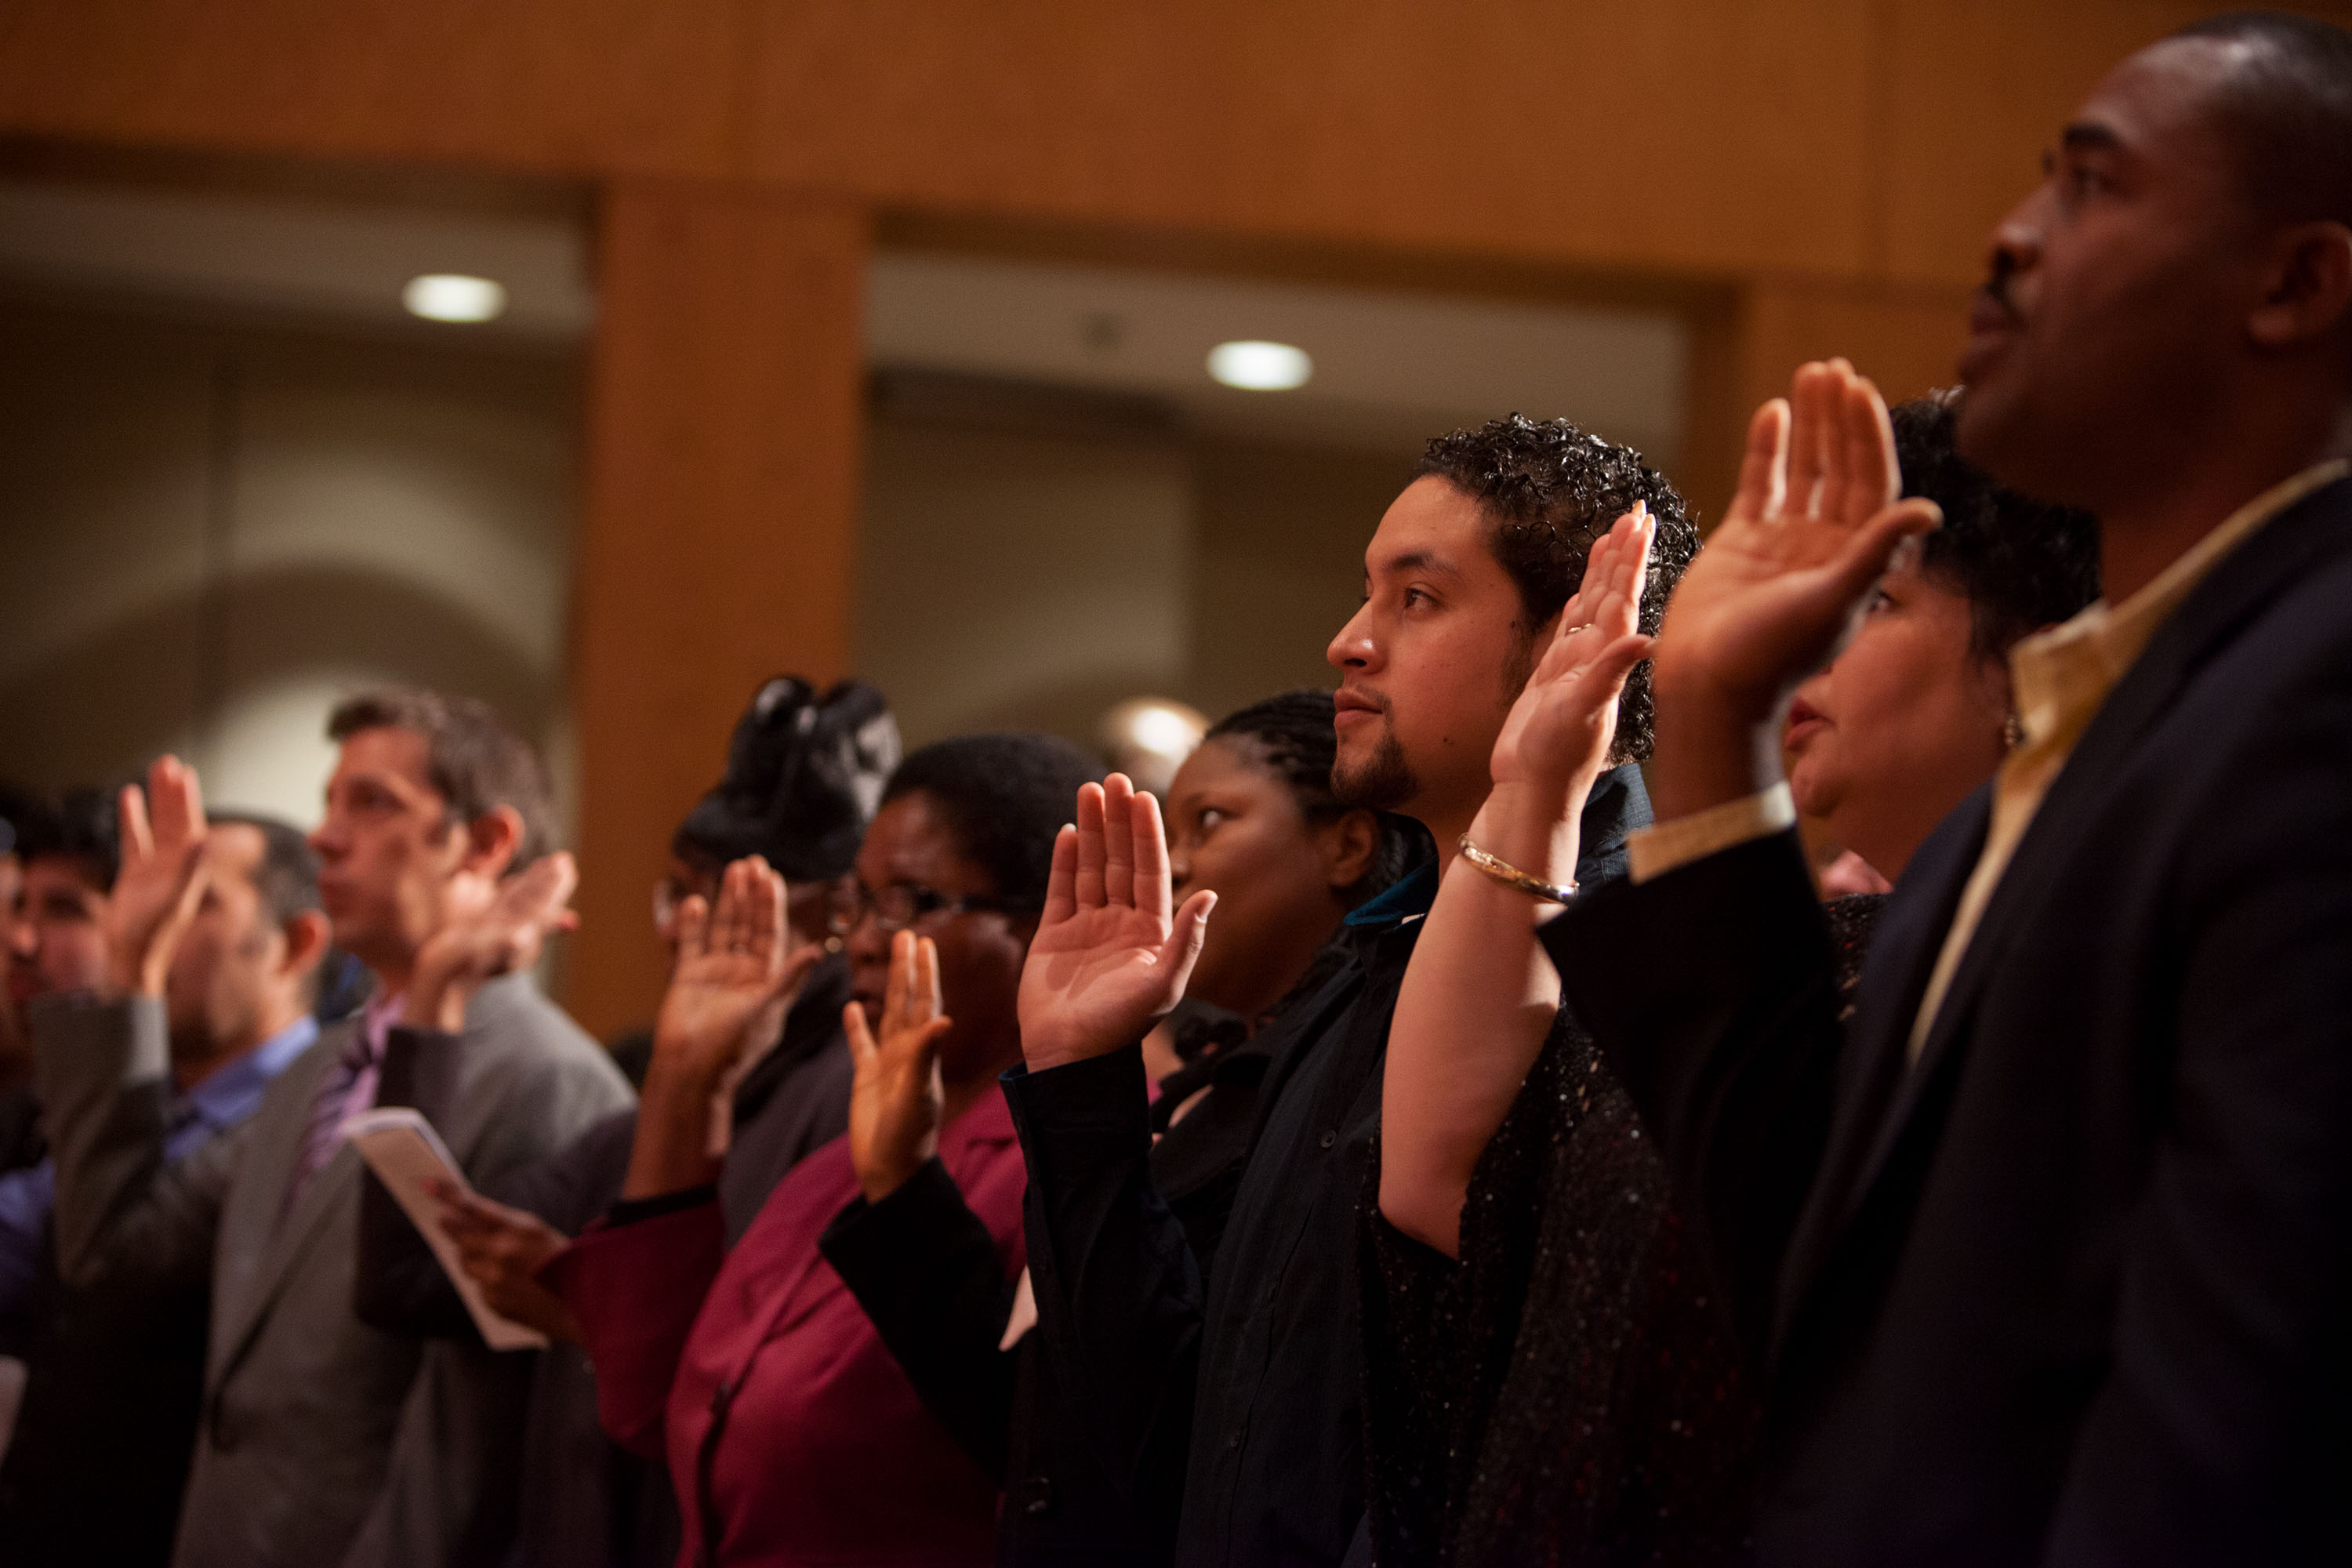 New U.S. Citizens take the oath of allegiance during a naturalization ceremony